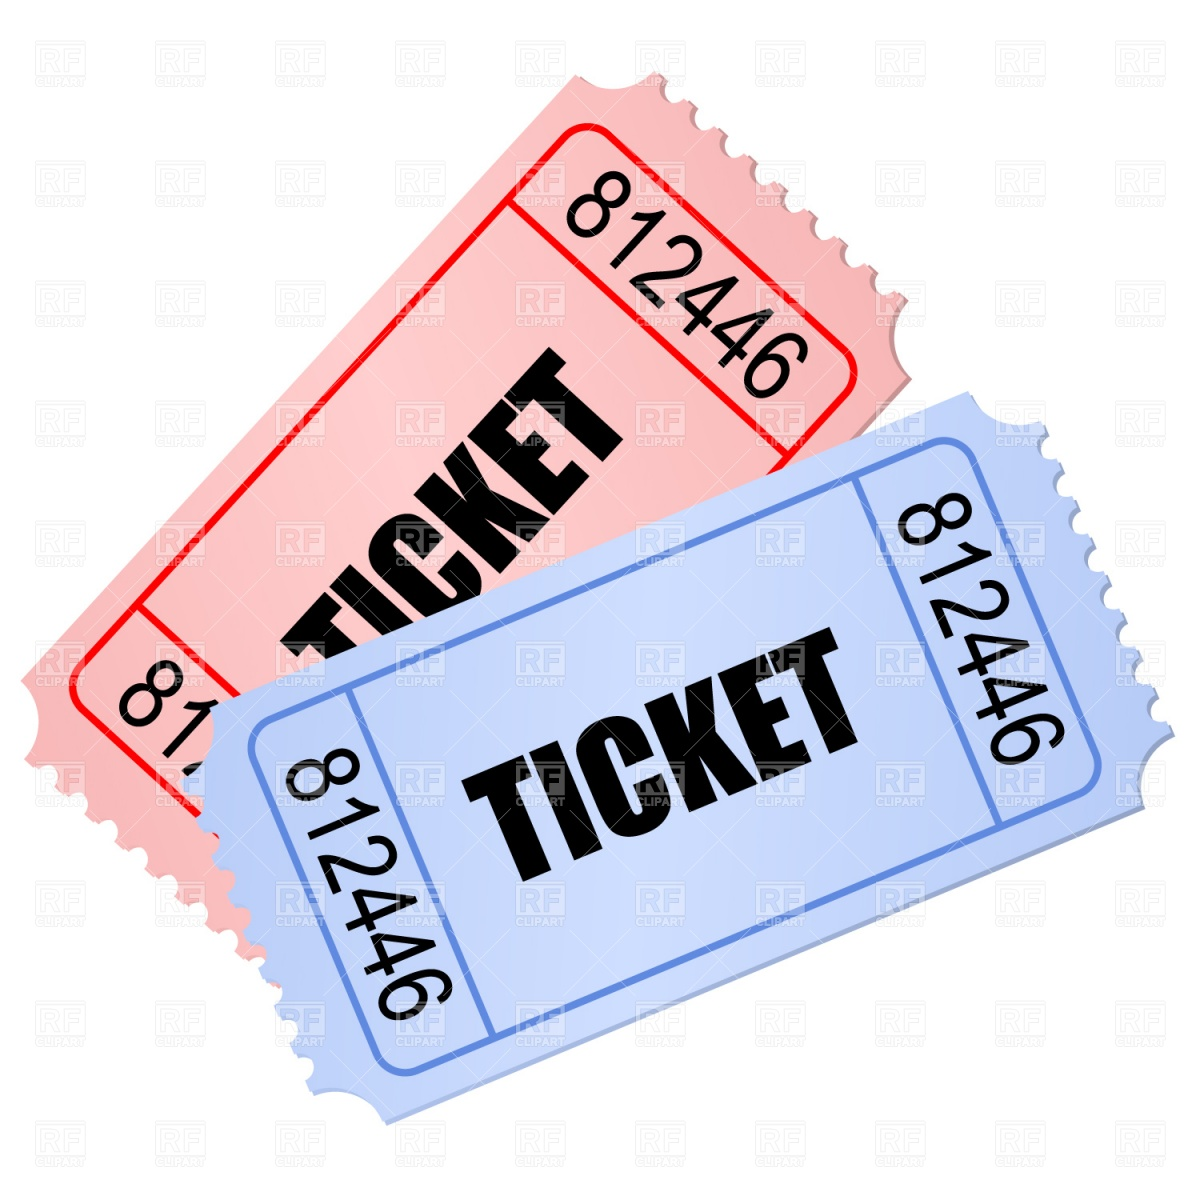 Tickets 1082 Objects Download Royalty Fr-Tickets 1082 Objects Download Royalty Free Vector Clip Art Eps-18